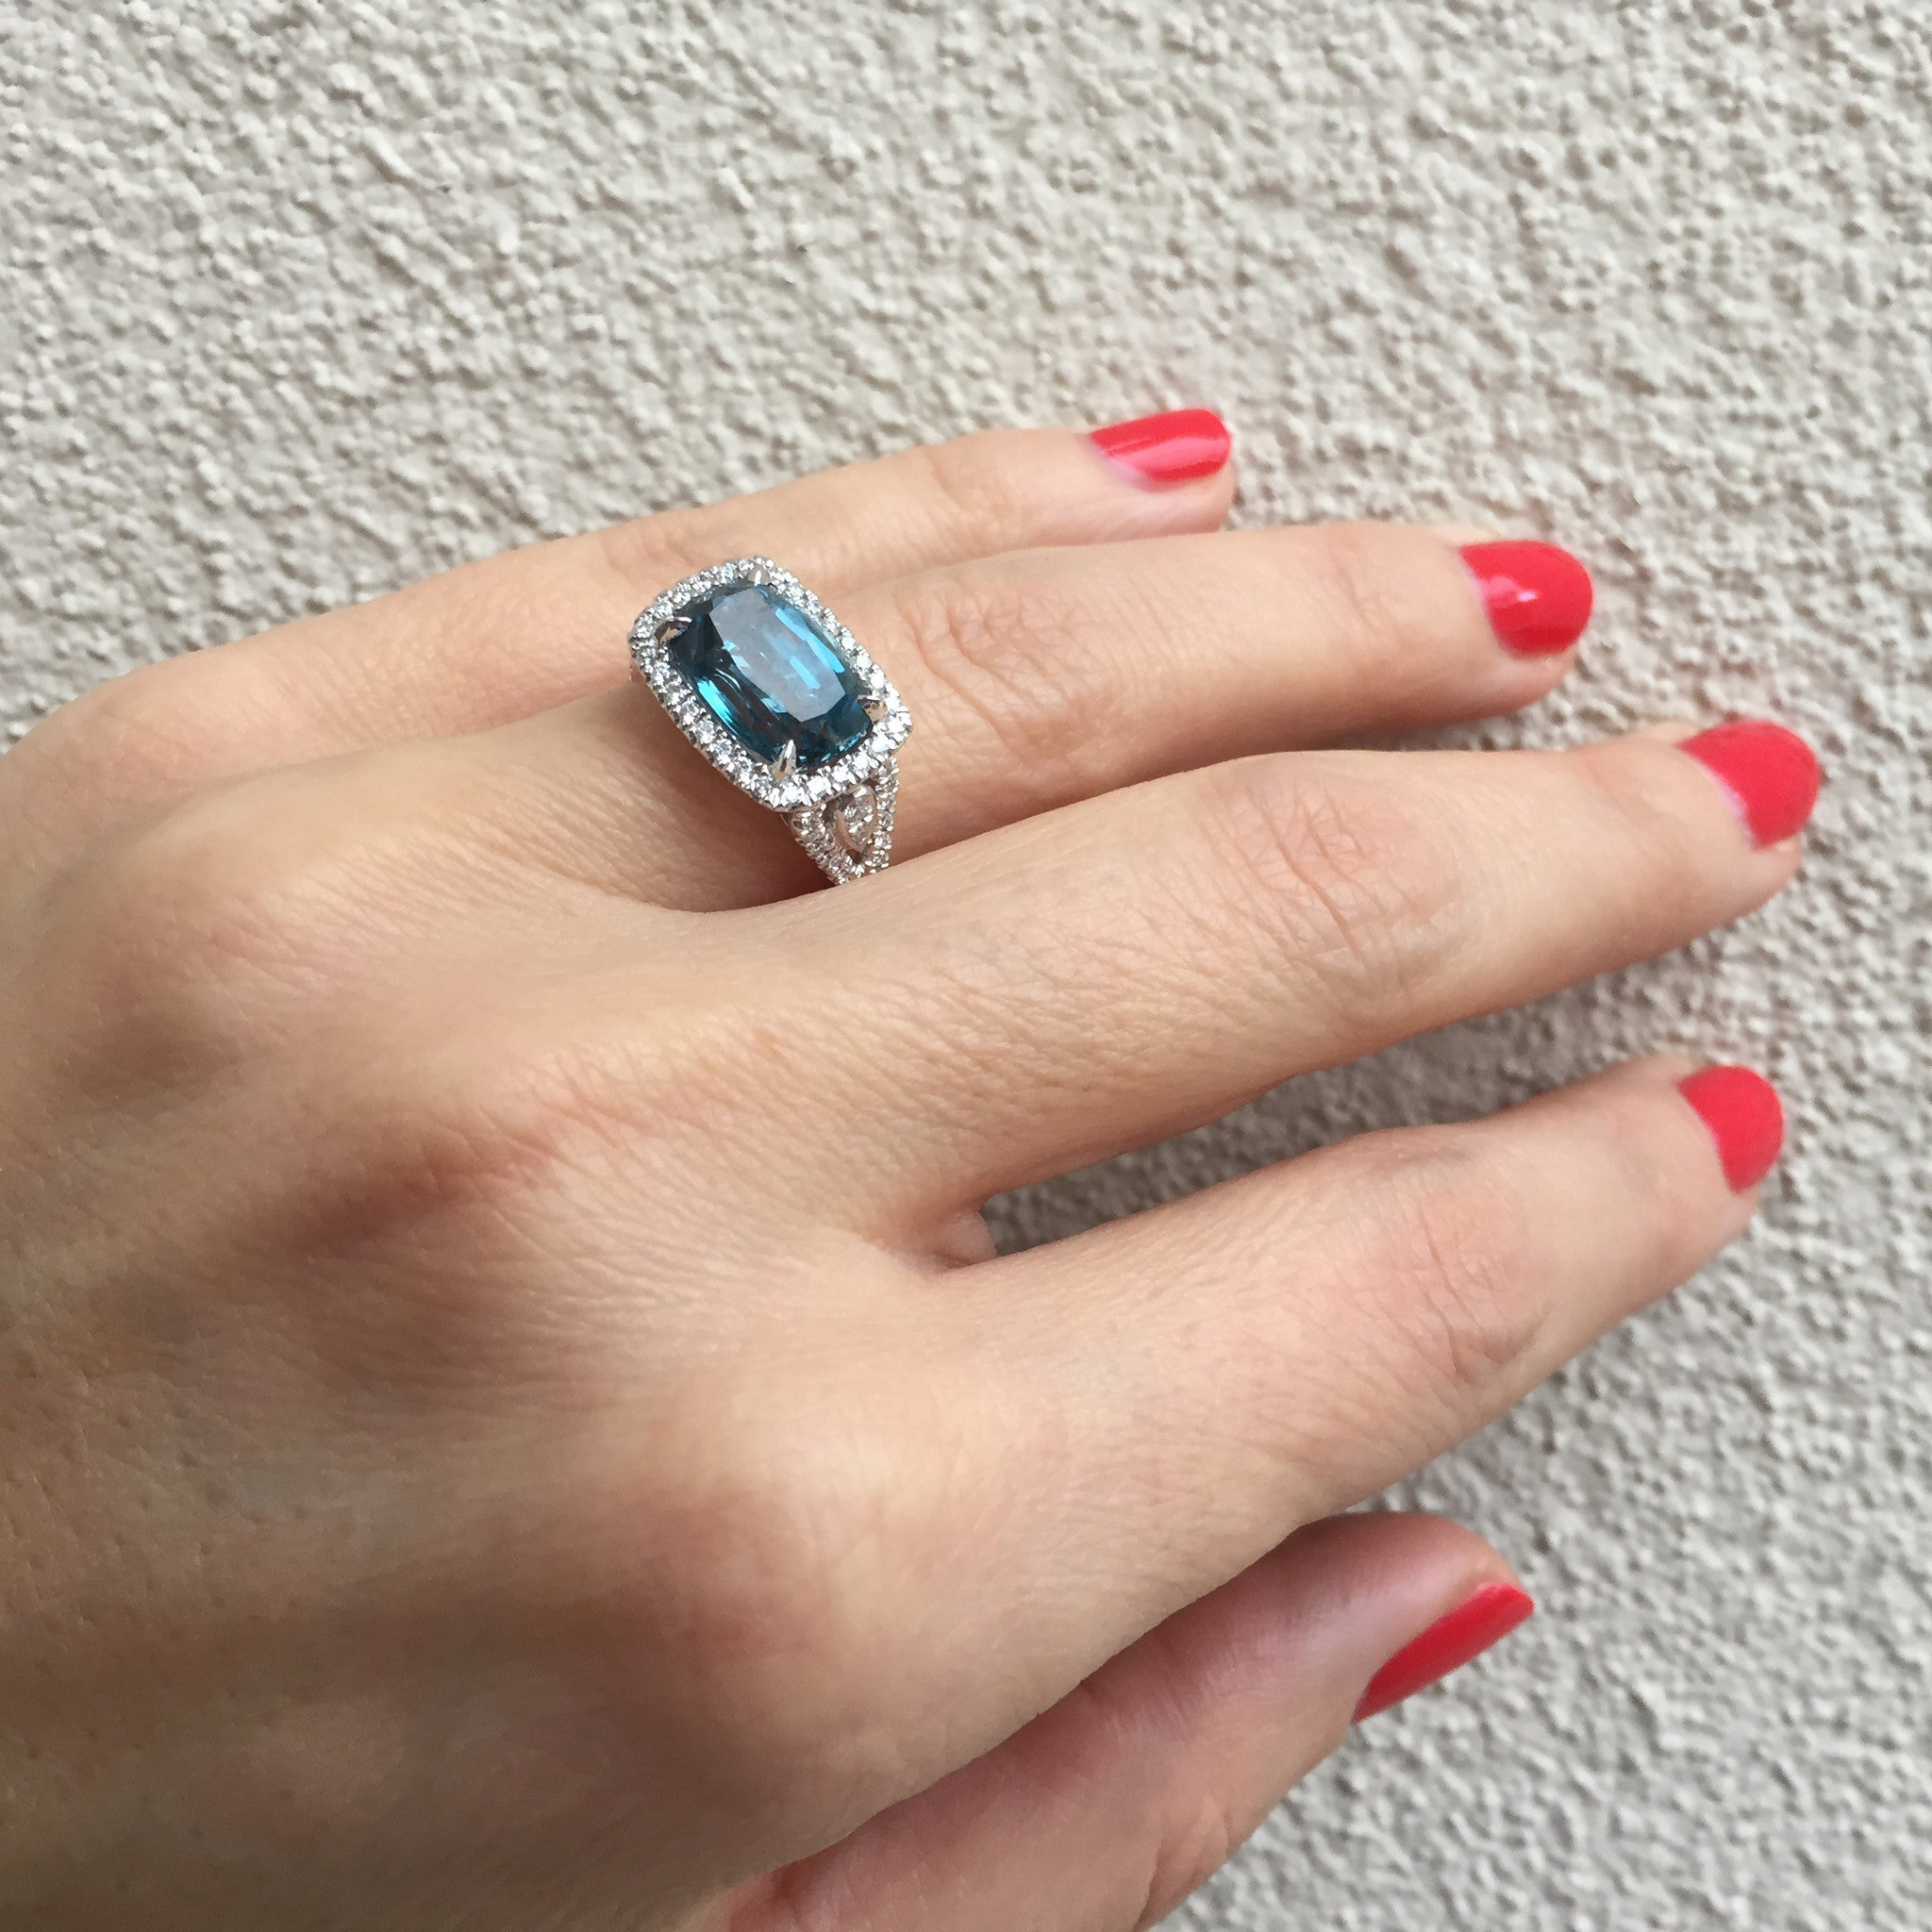 Doves London Blue Cushion Topaz Diamond Halo Rectangular Ring on model